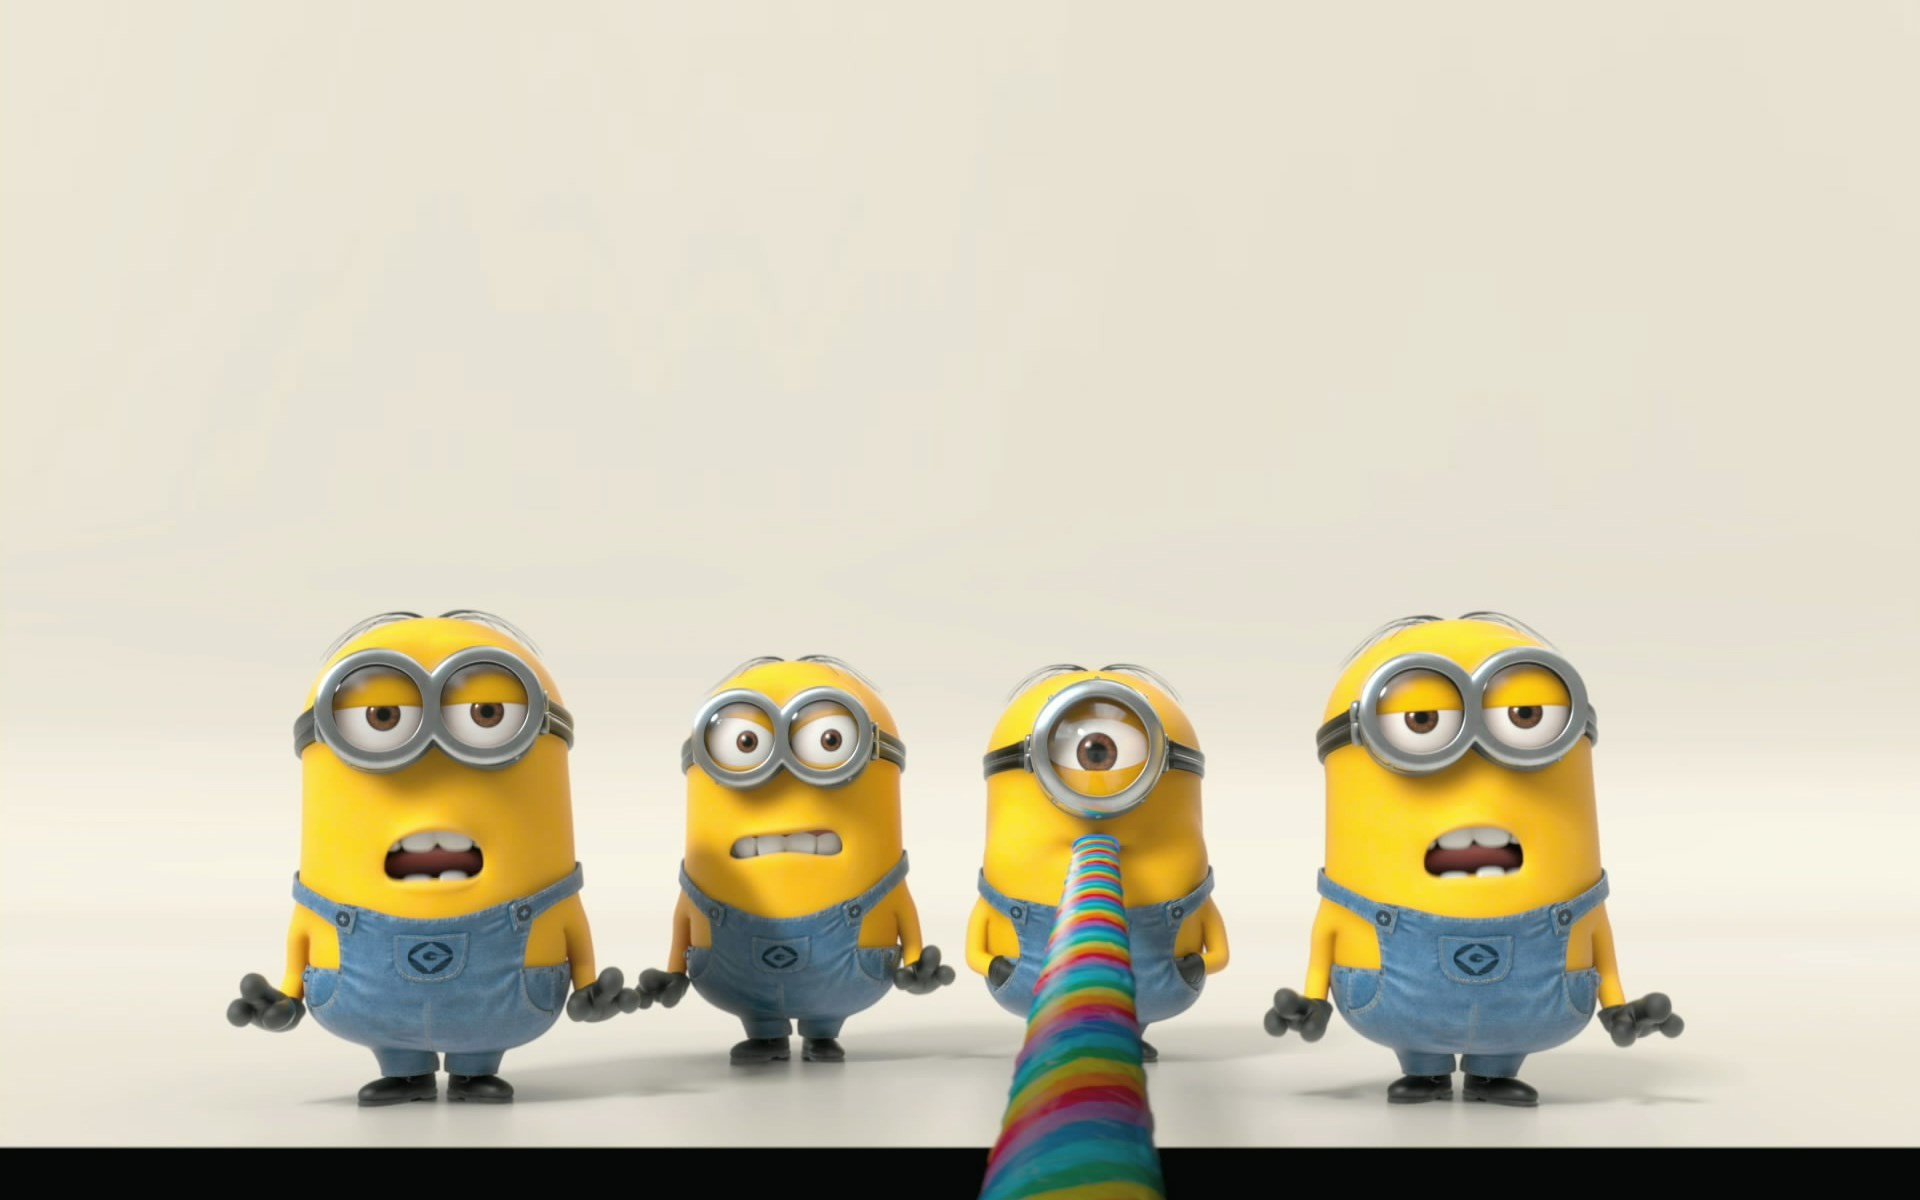 1920x1200 ... minion desktop wallpaper hd pics  138 kb by callan robin ...